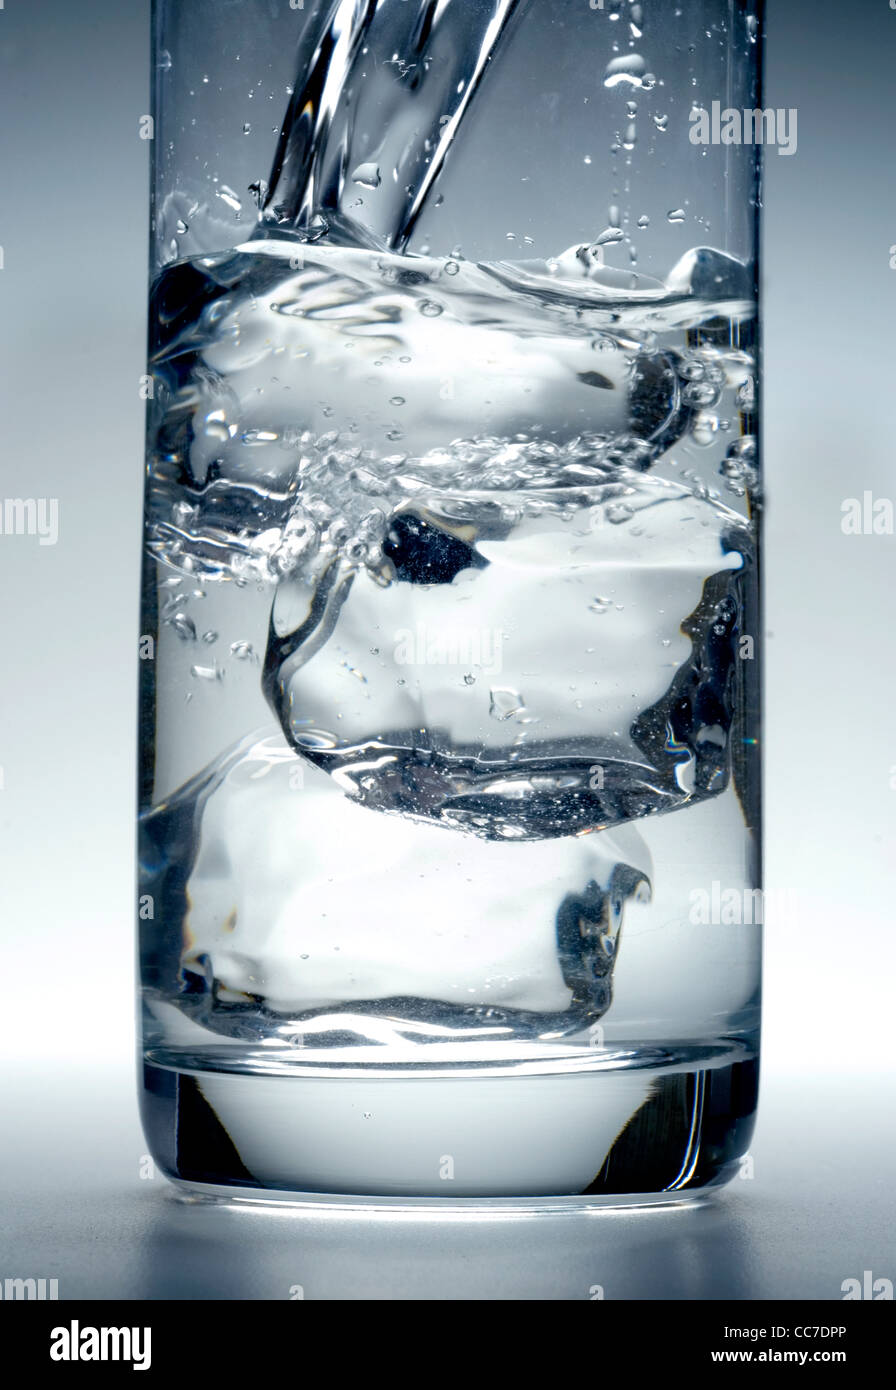 glass of water with ice cubes - Stock Image